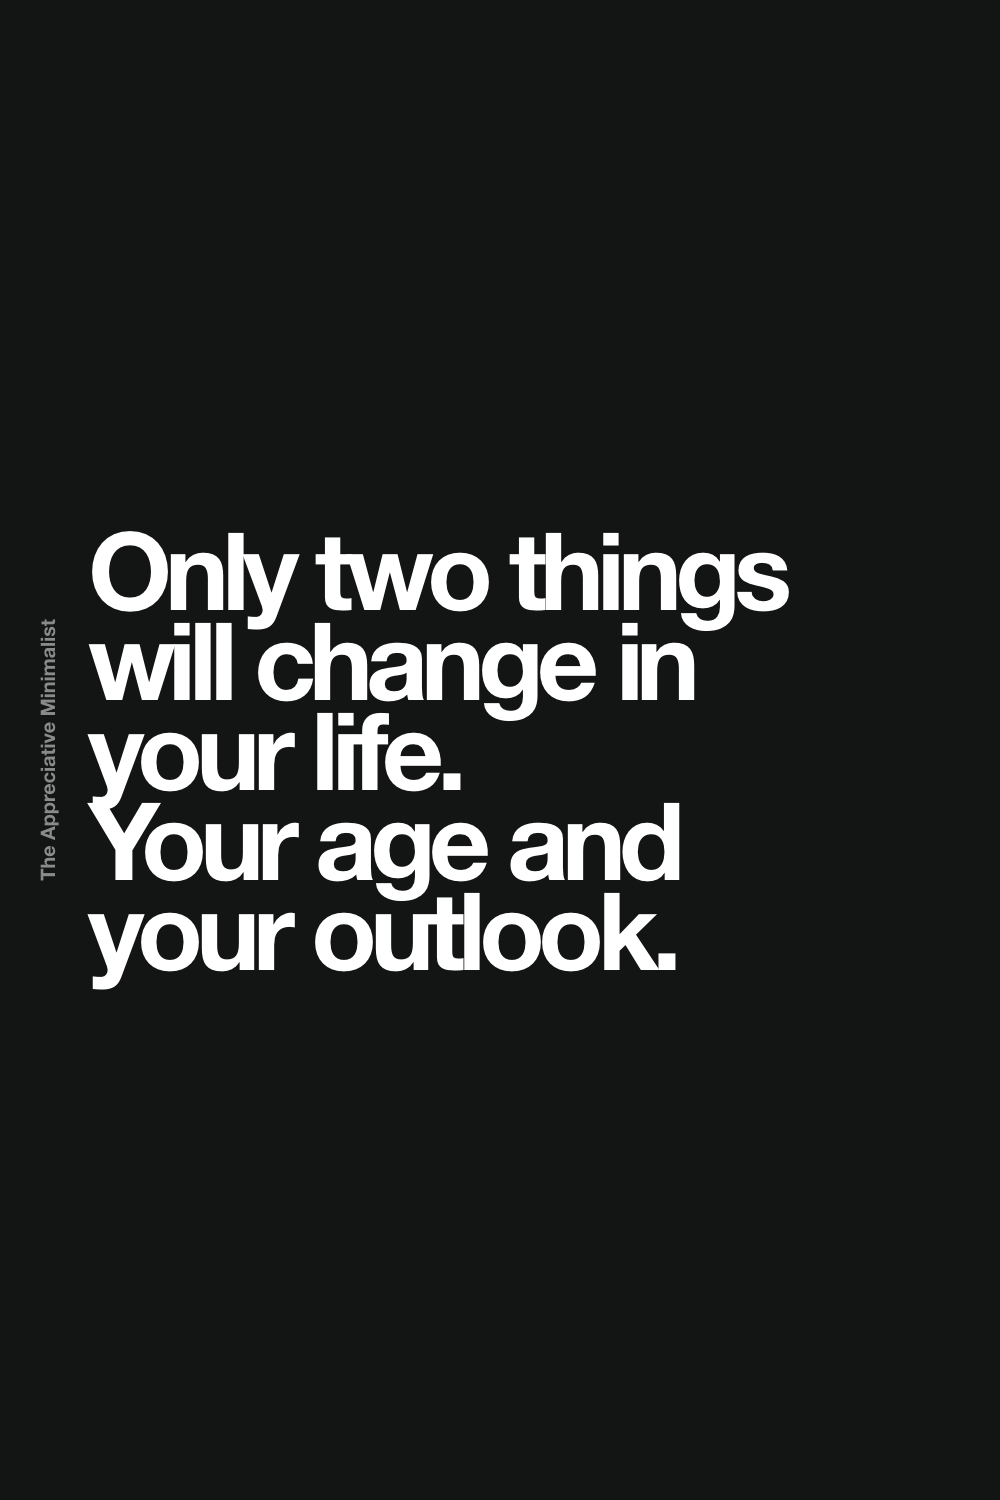 Only two things will change in your life. Your age and your outlook.